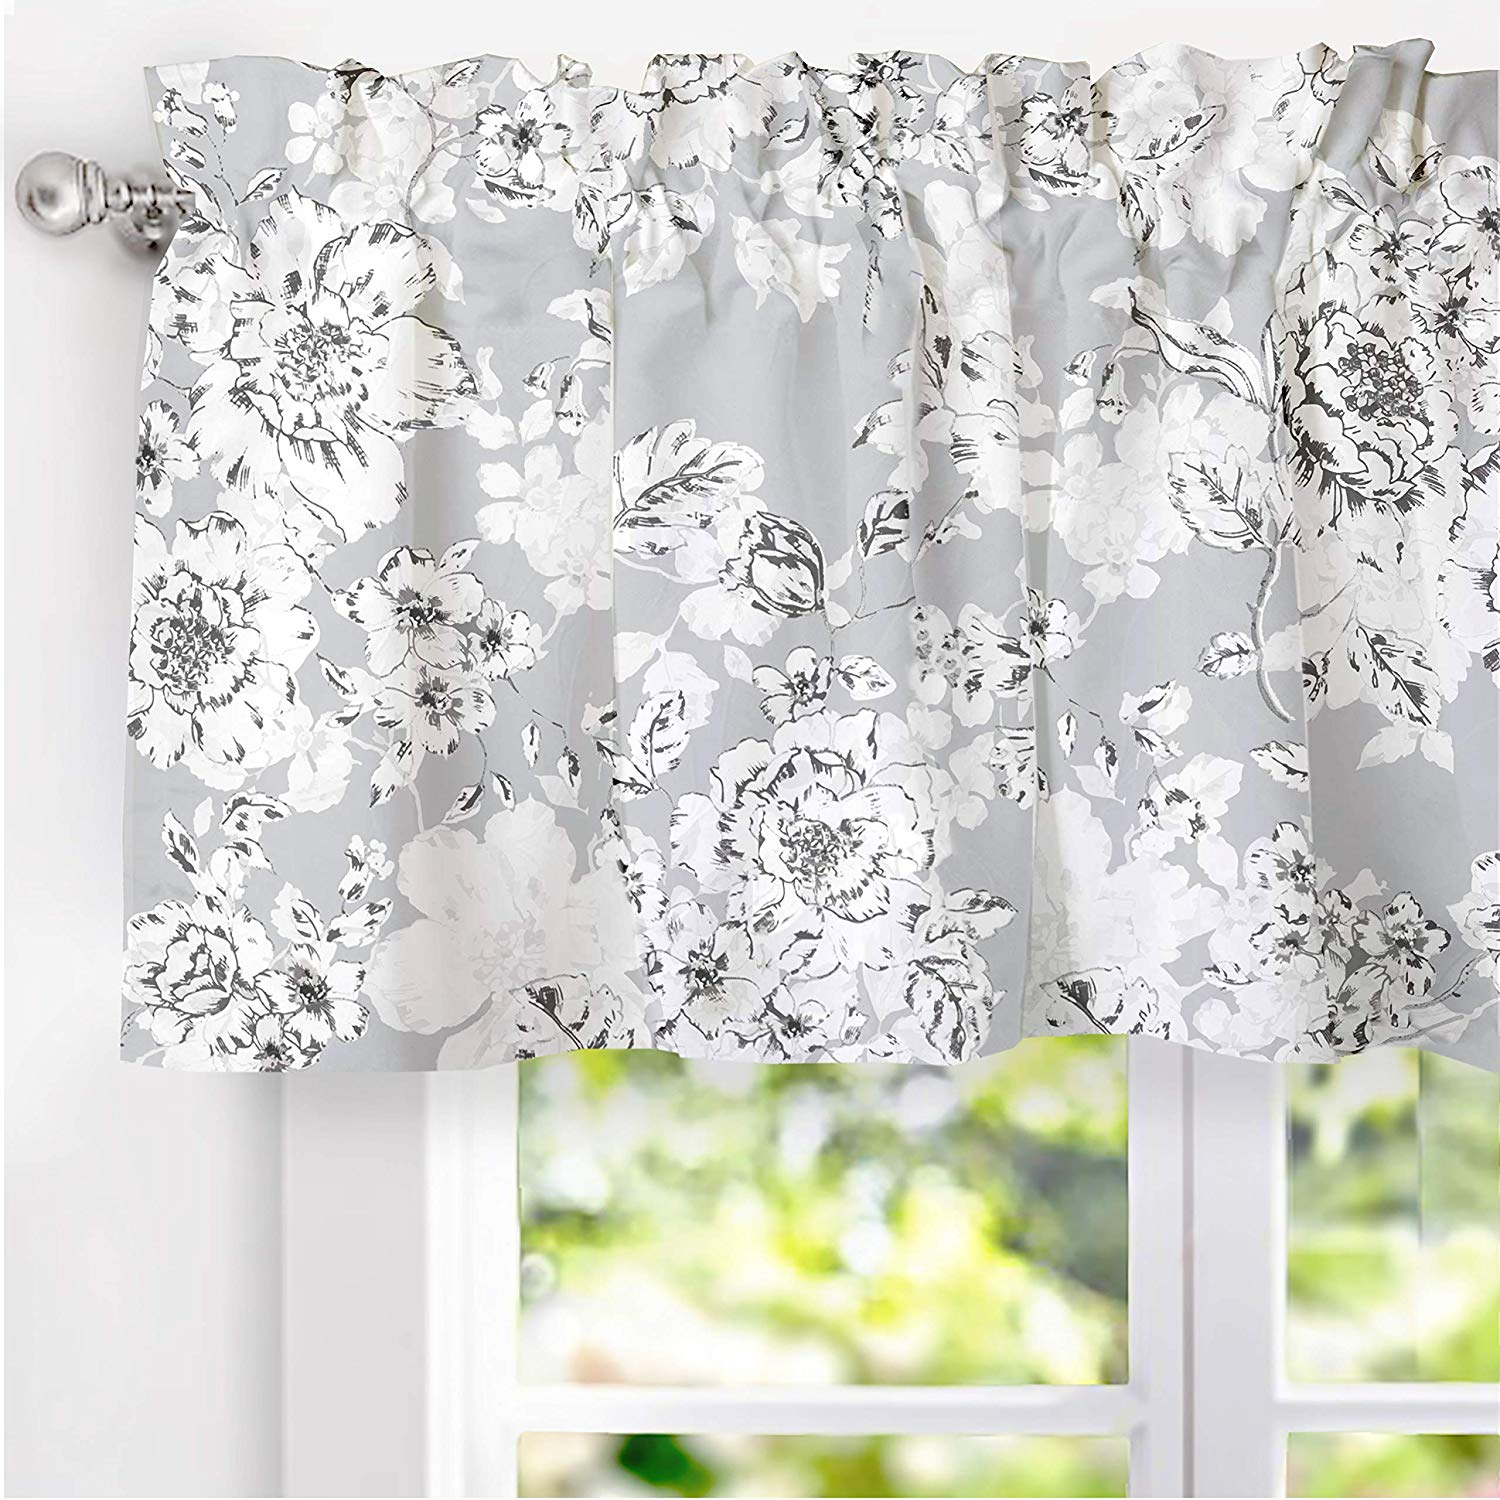 DriftAway Flower/Floral Pencil Sketch Lined Thermal Insulated Energy Saving  Window Curtain Valance for Living Room Bedroom Kitchen, 2 Layer, Rod ...